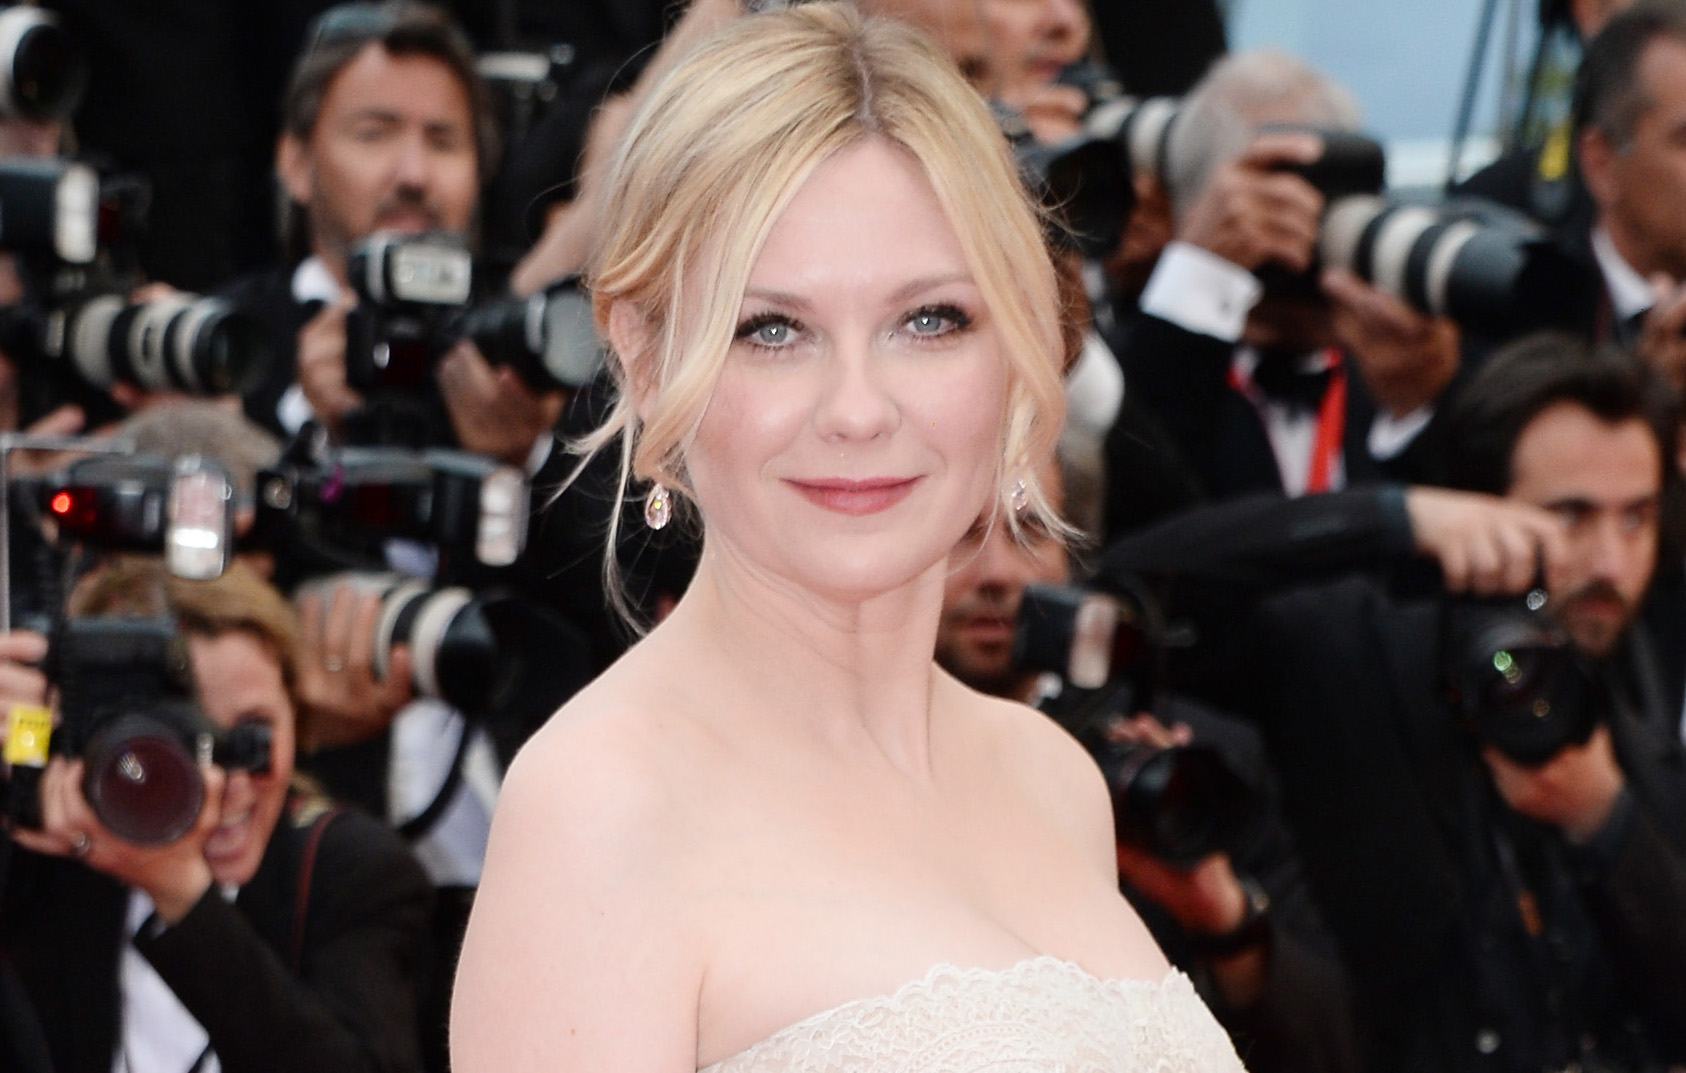 Kirsten Dunst has been almost ridiculously sophisticated at every Cannes event